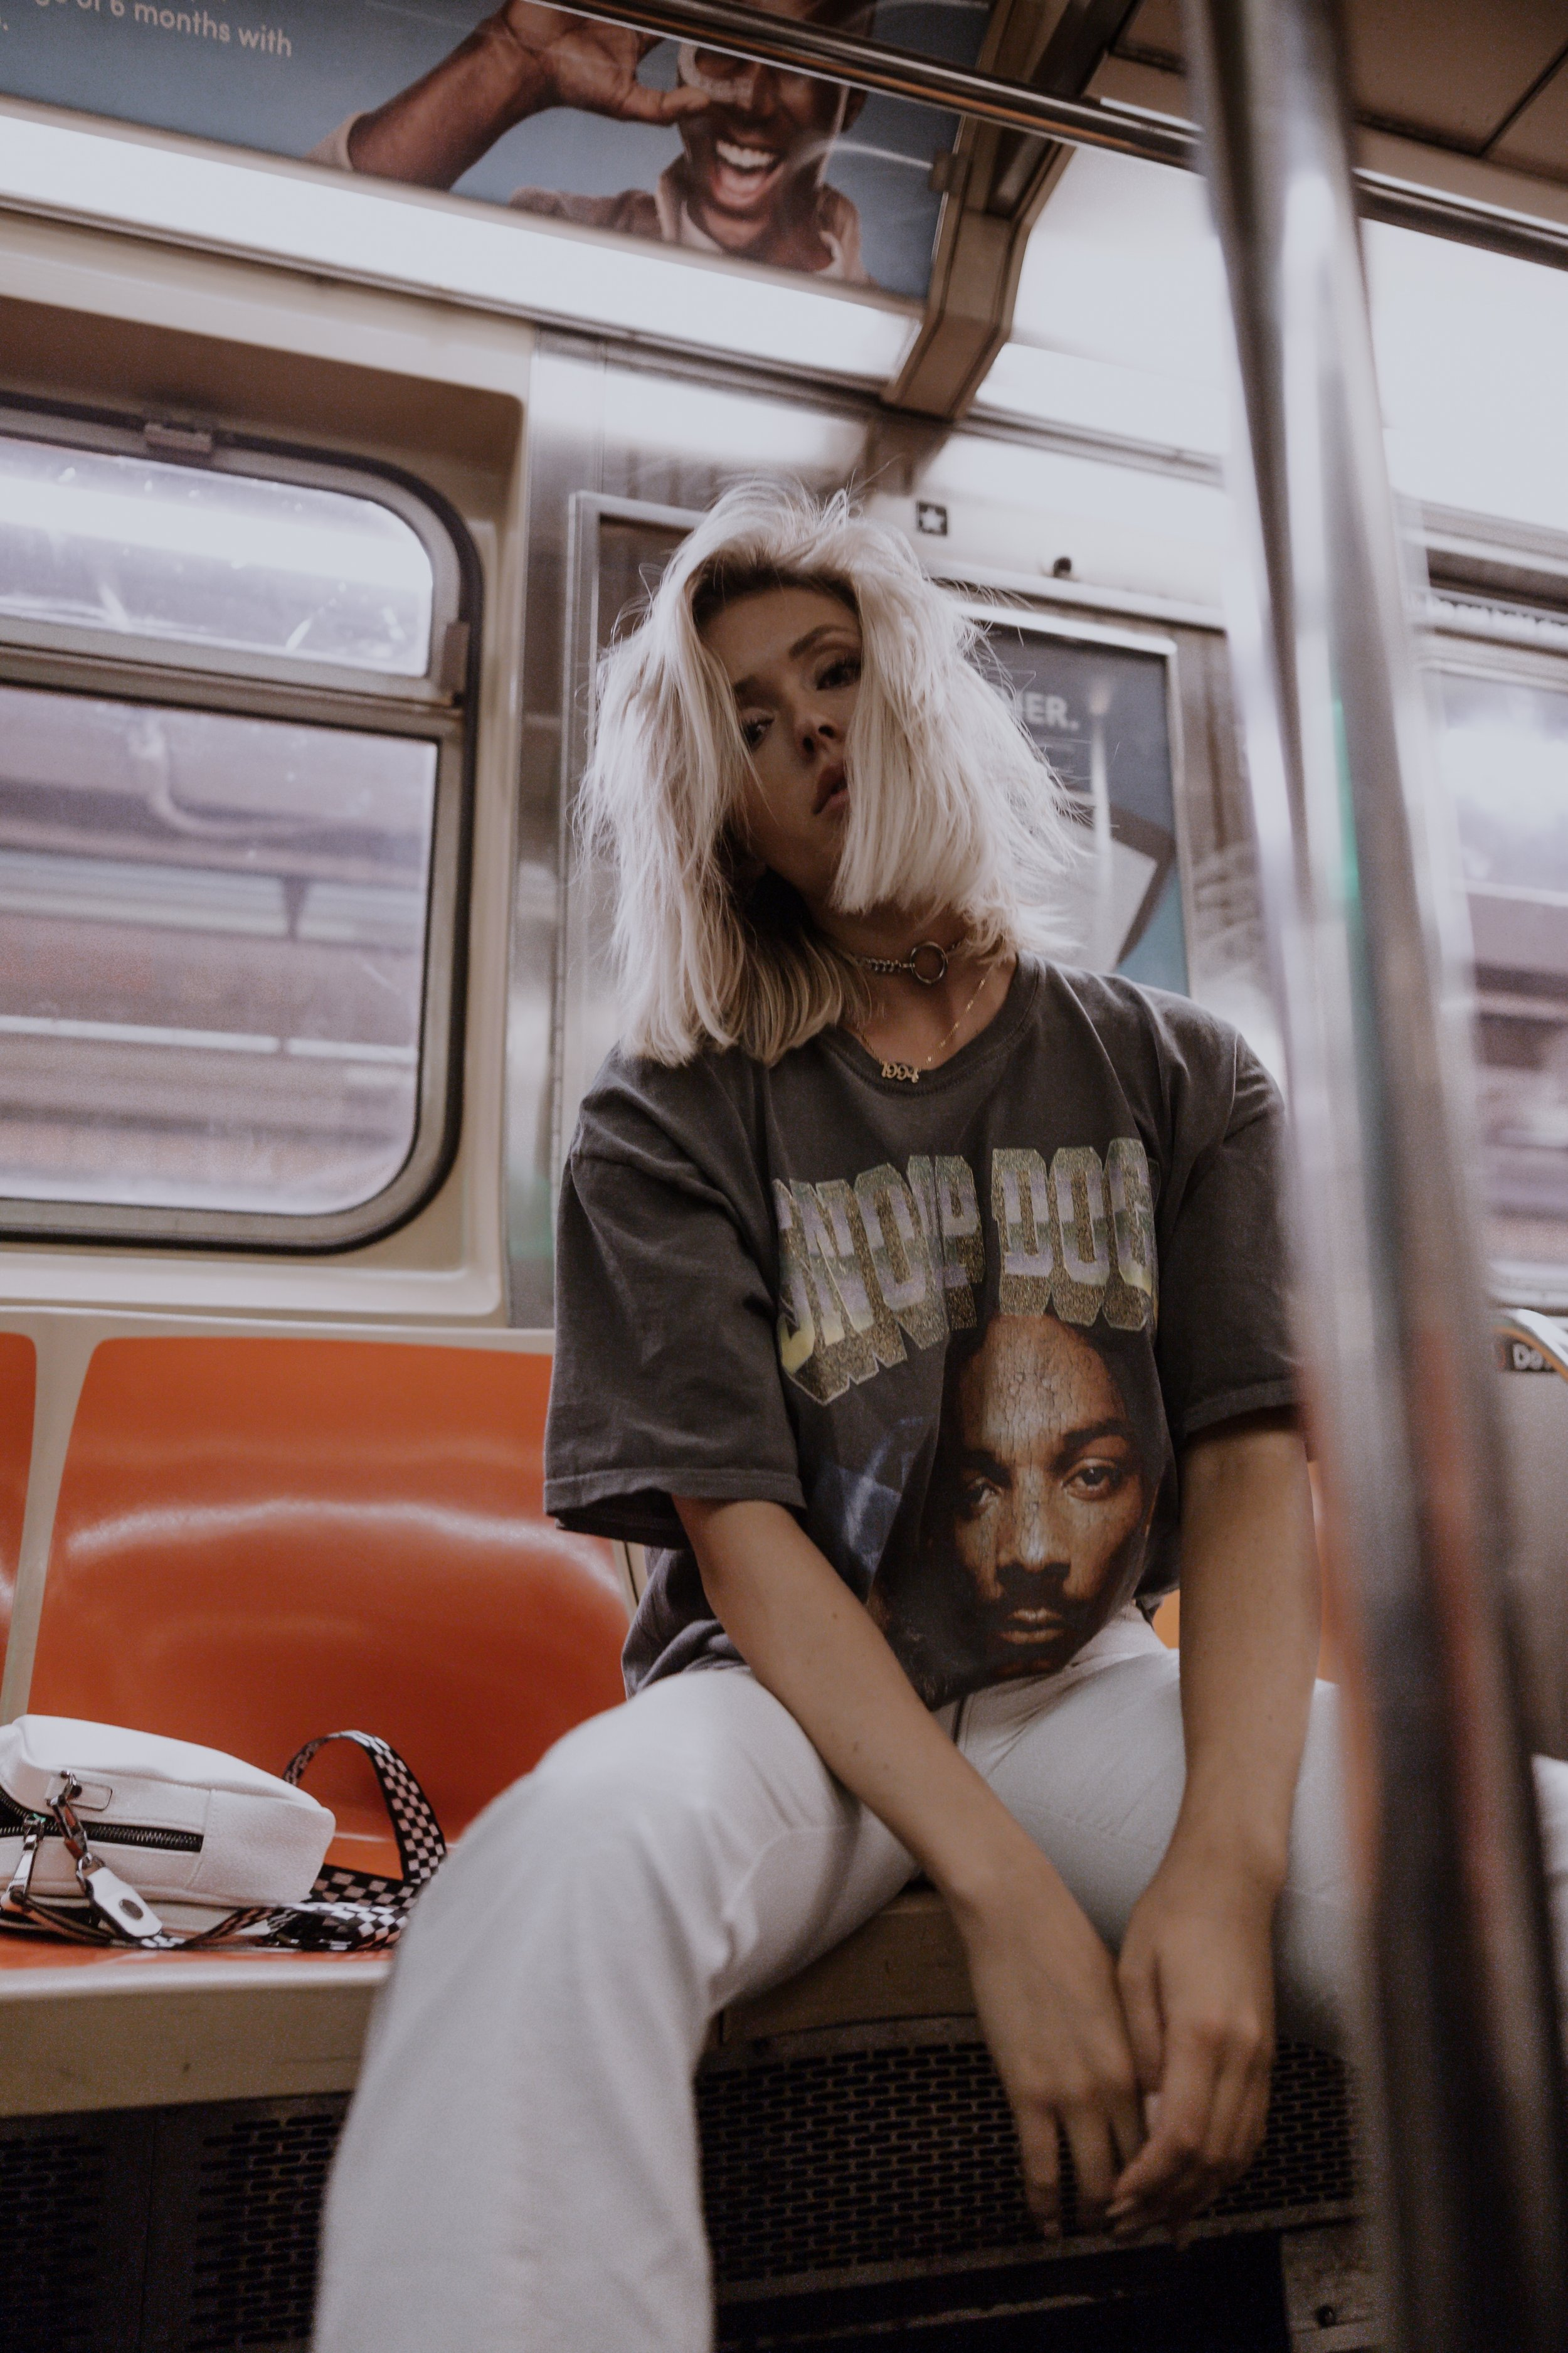 Snoop Dog Graphic Tee for the Win - Oversized graphic tees in general are my jam. Especially when paired with a dope pair of pants (like these I.Am.Gia zipper and snakeskin ones) and a metal choker (f*ck yes). Going out? graphic tee and badass, platform boots.. running errands? graphic tee and biker shorts.. Going to bed? graphic tee and sweatpants.. Going to a buffet? graphic tee gunna cover that food baby.